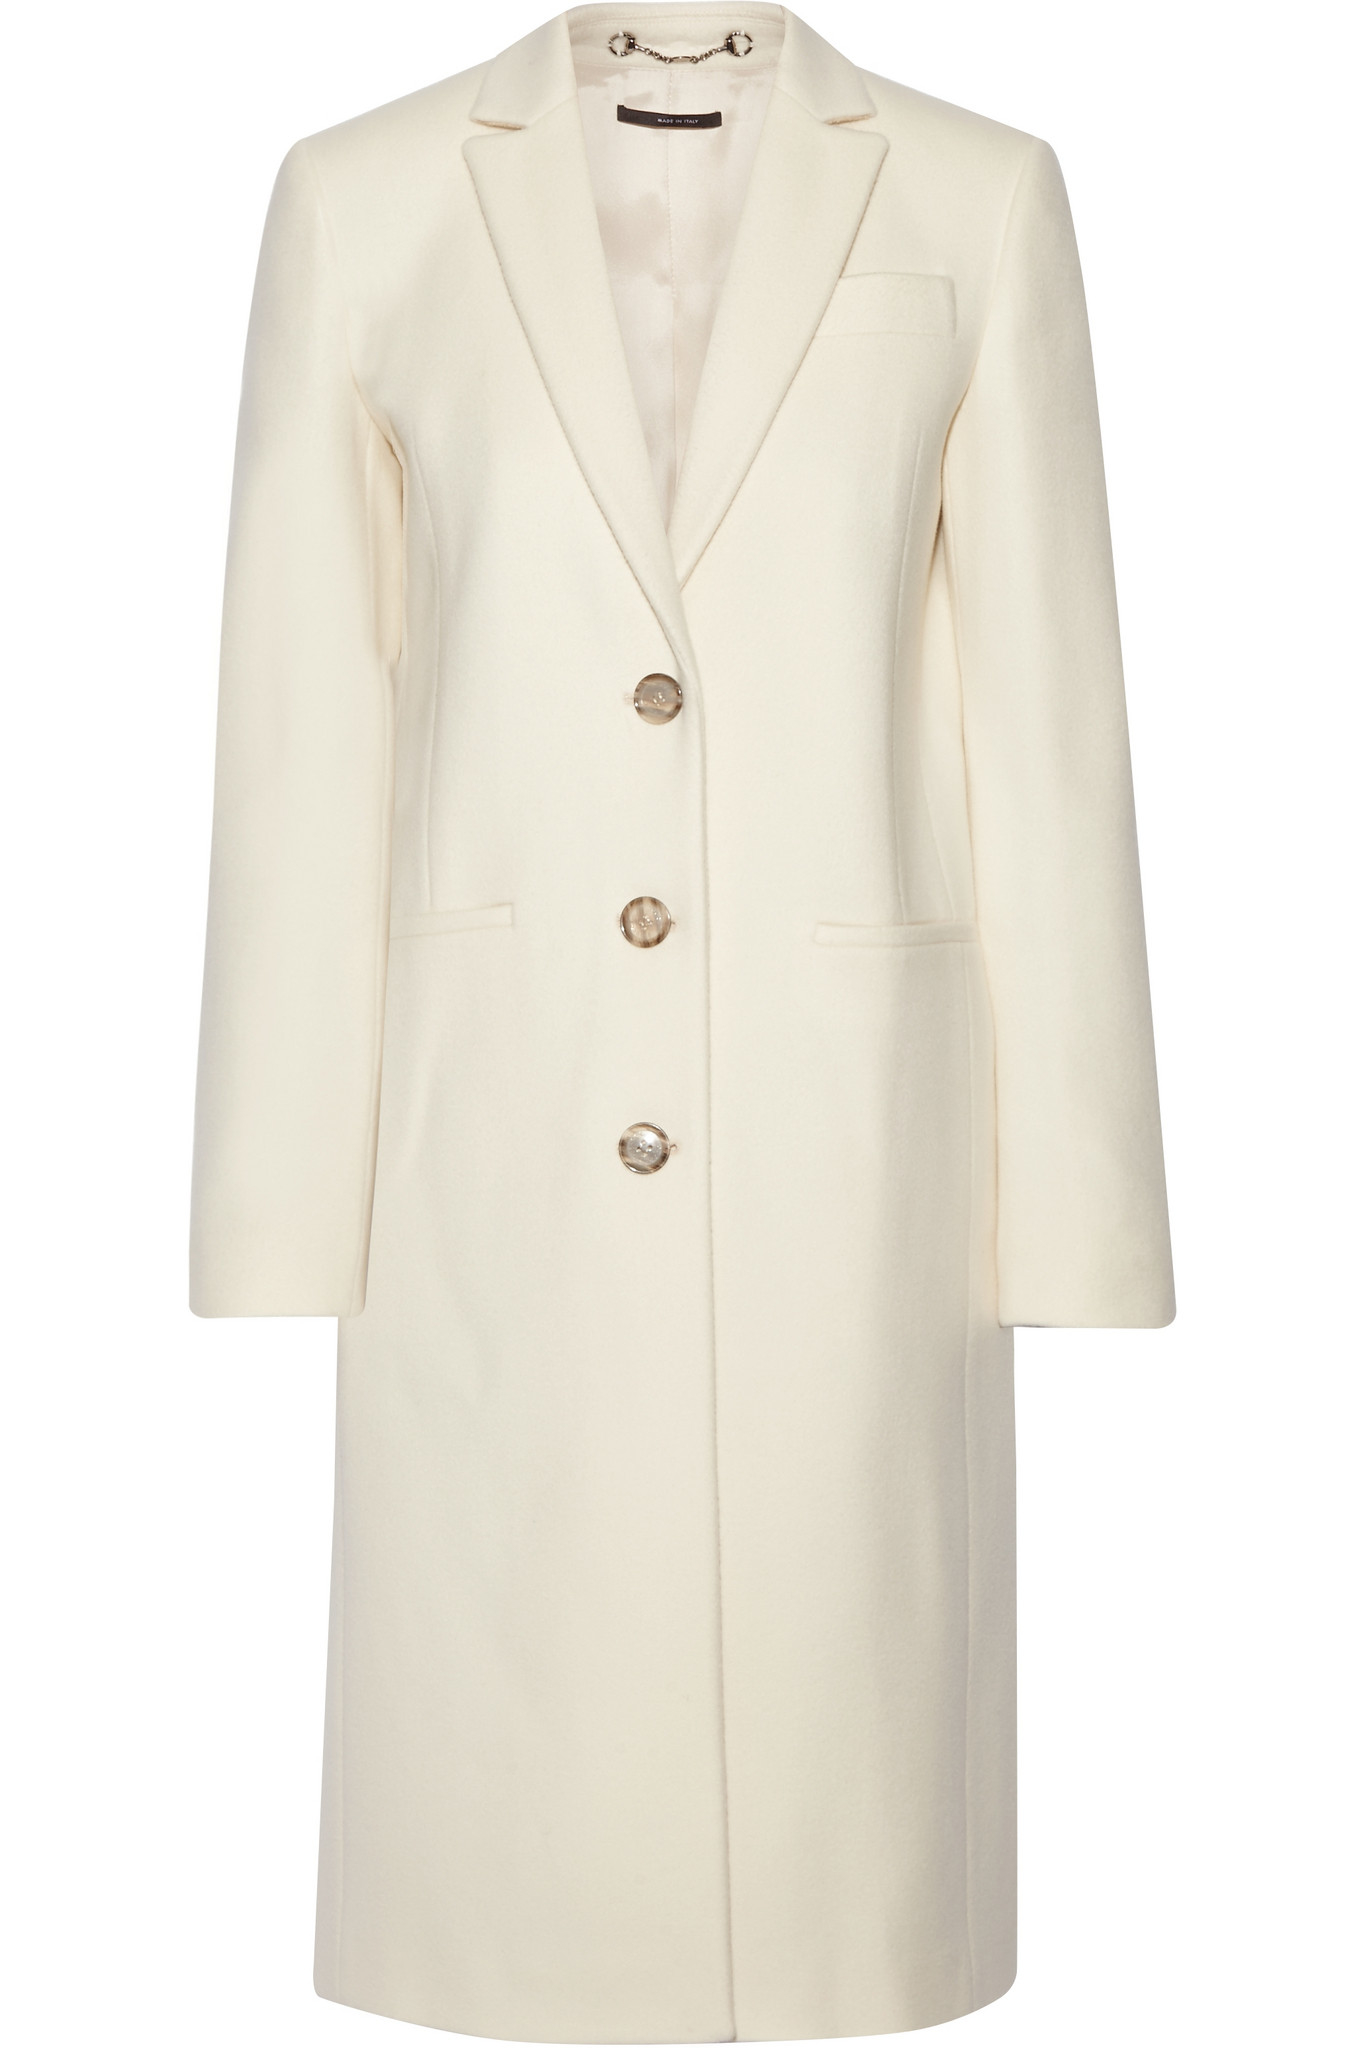 Gucci Wool Coat in White | Lyst